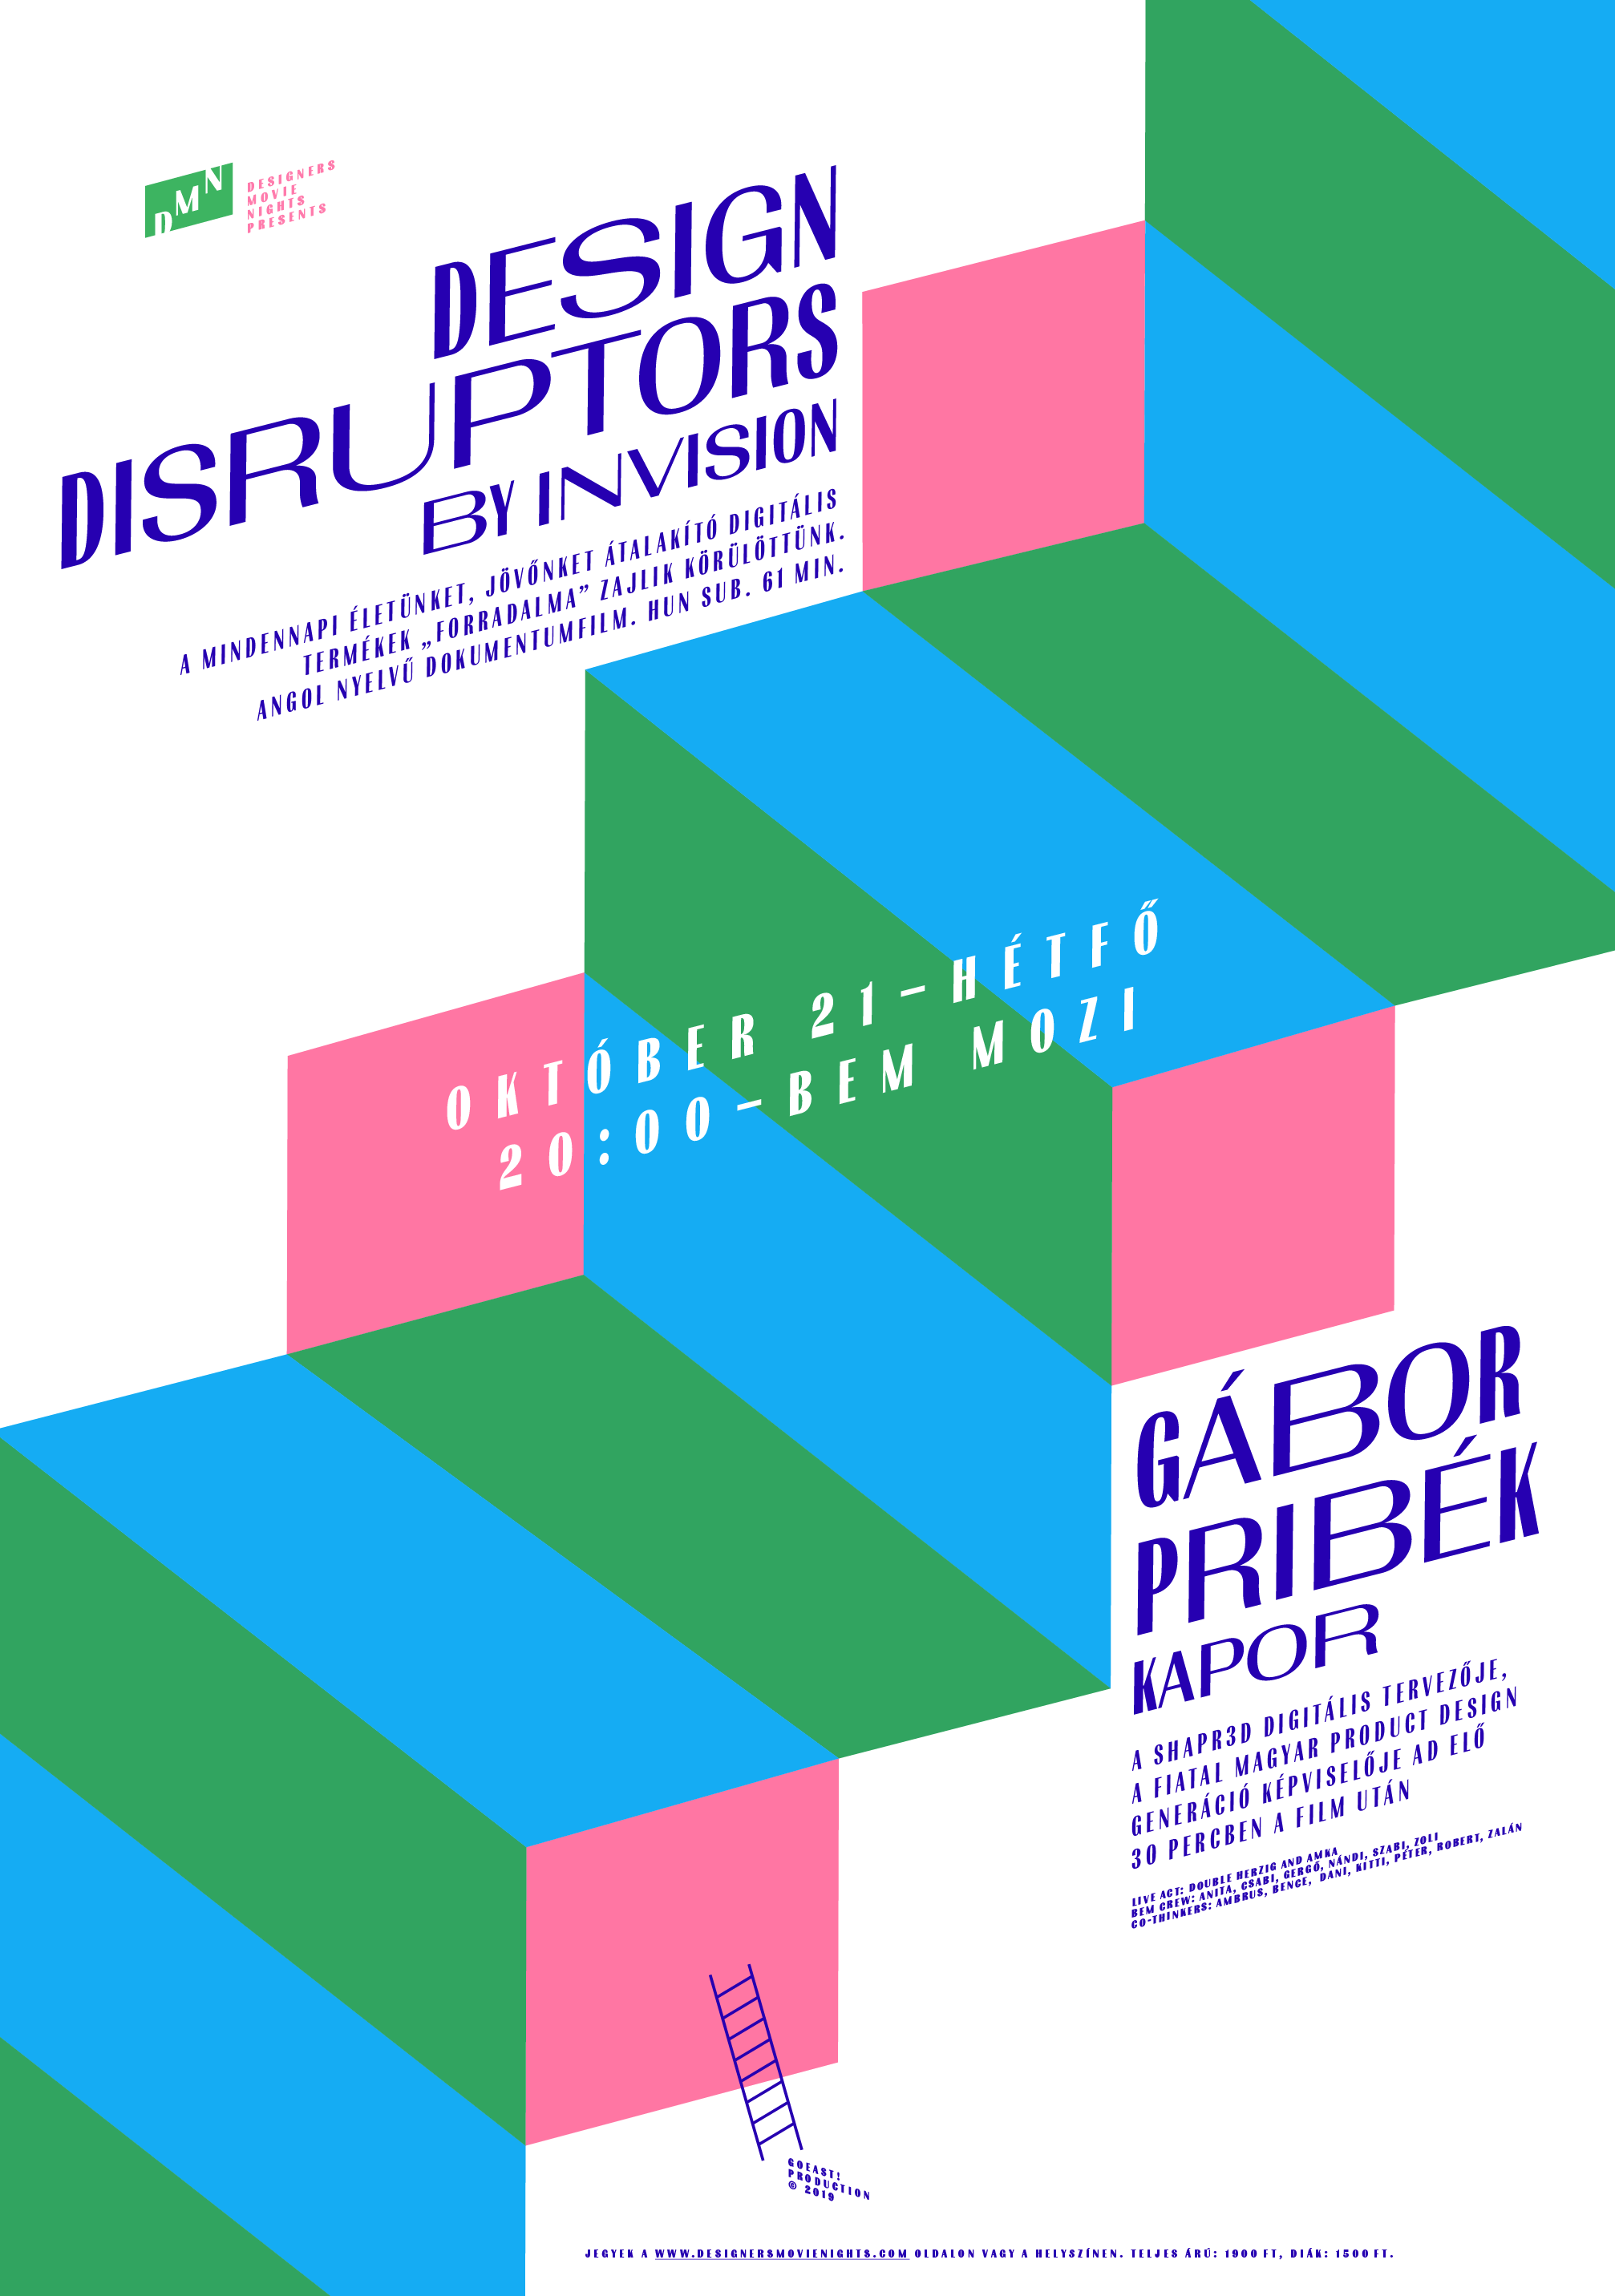 DMN: Design Disruptors by InVision and Gábor Pribék from Shapr3D at 21th. Oct